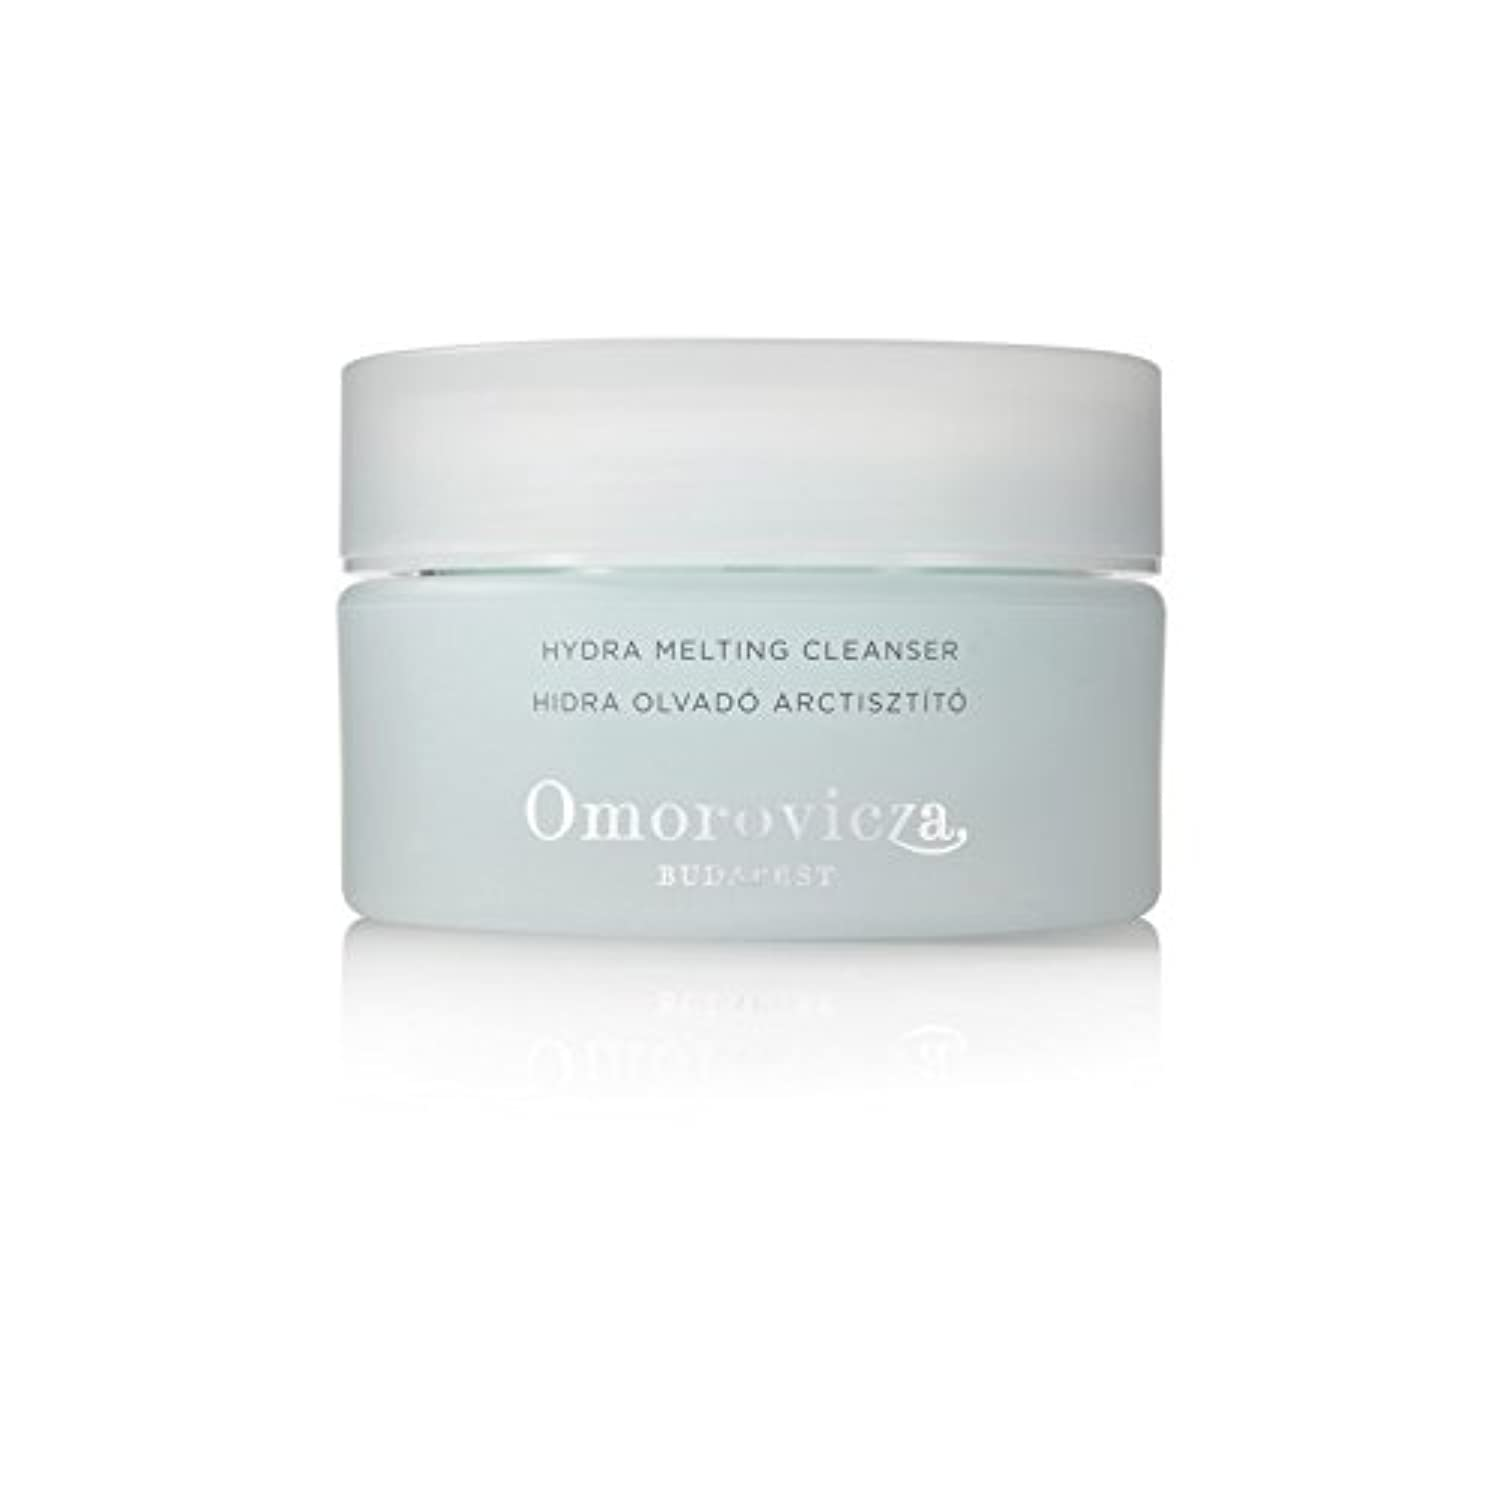 Omorovicza Hydra Melting Cleanser (100ml) (Pack of 6) - ヒドラ溶融クレンザー(100)に x6 [並行輸入品]